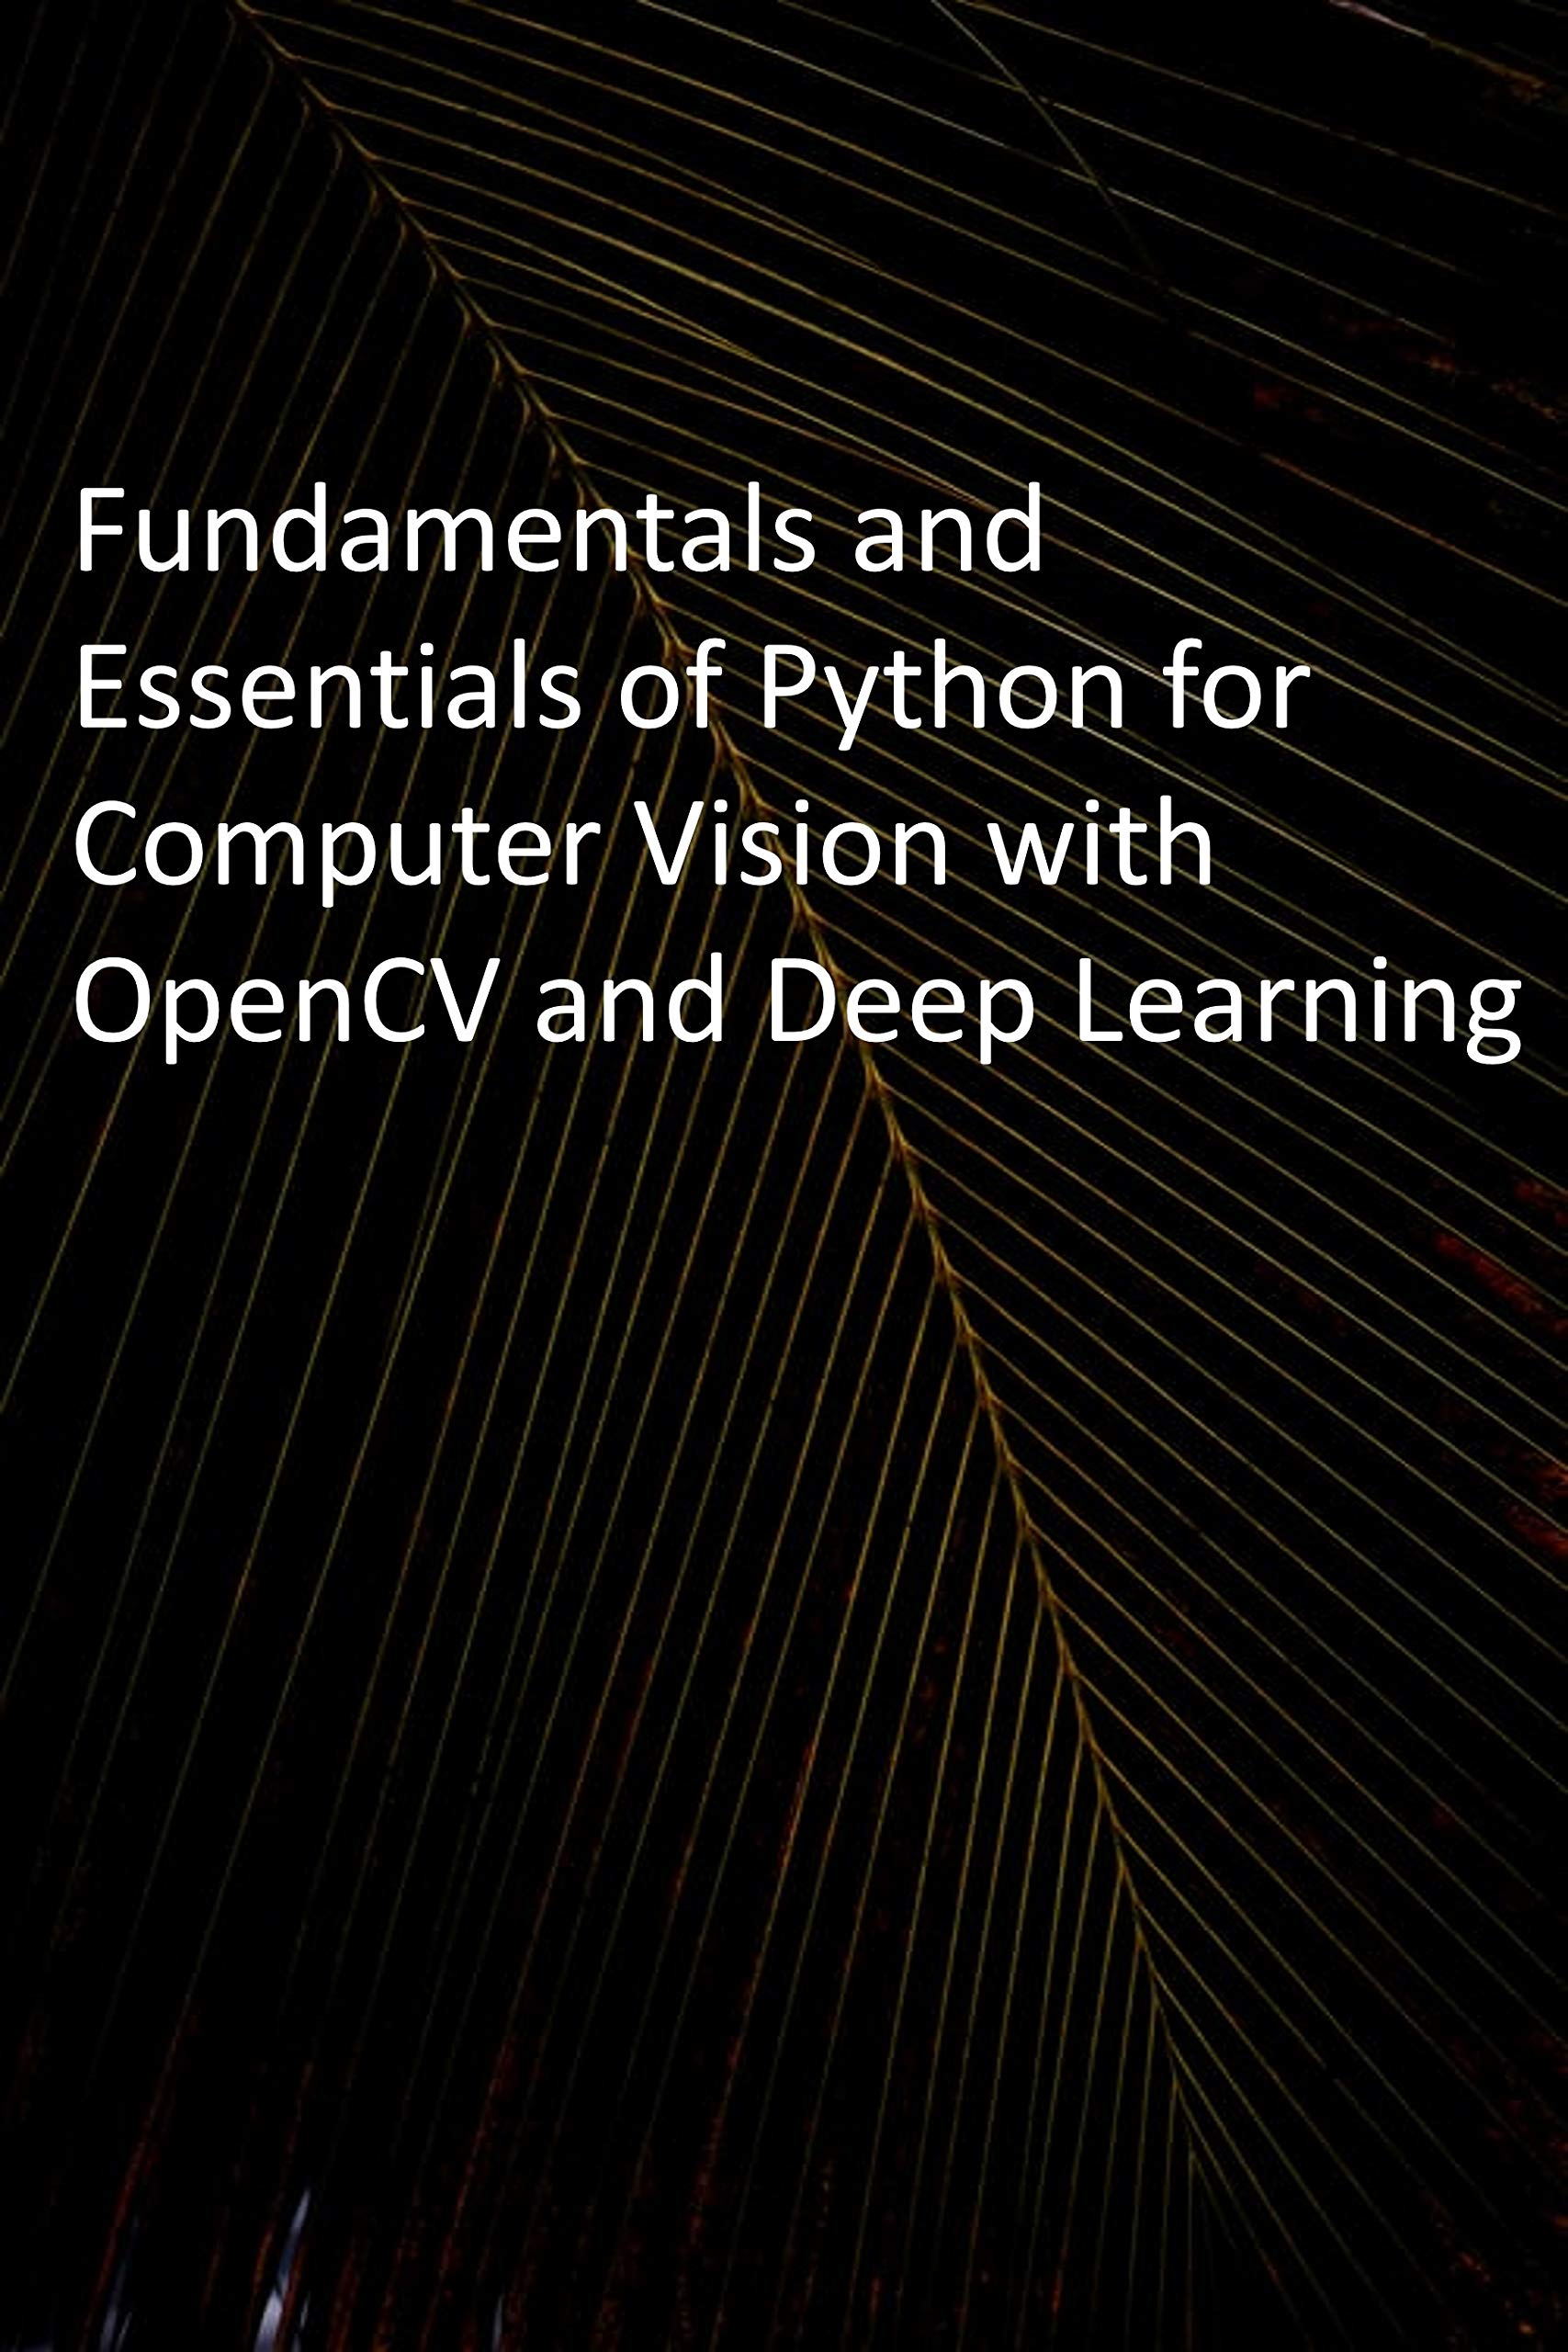 Fundamentals and Essentials of Python for Computer Vision with OpenCV and Deep Learning